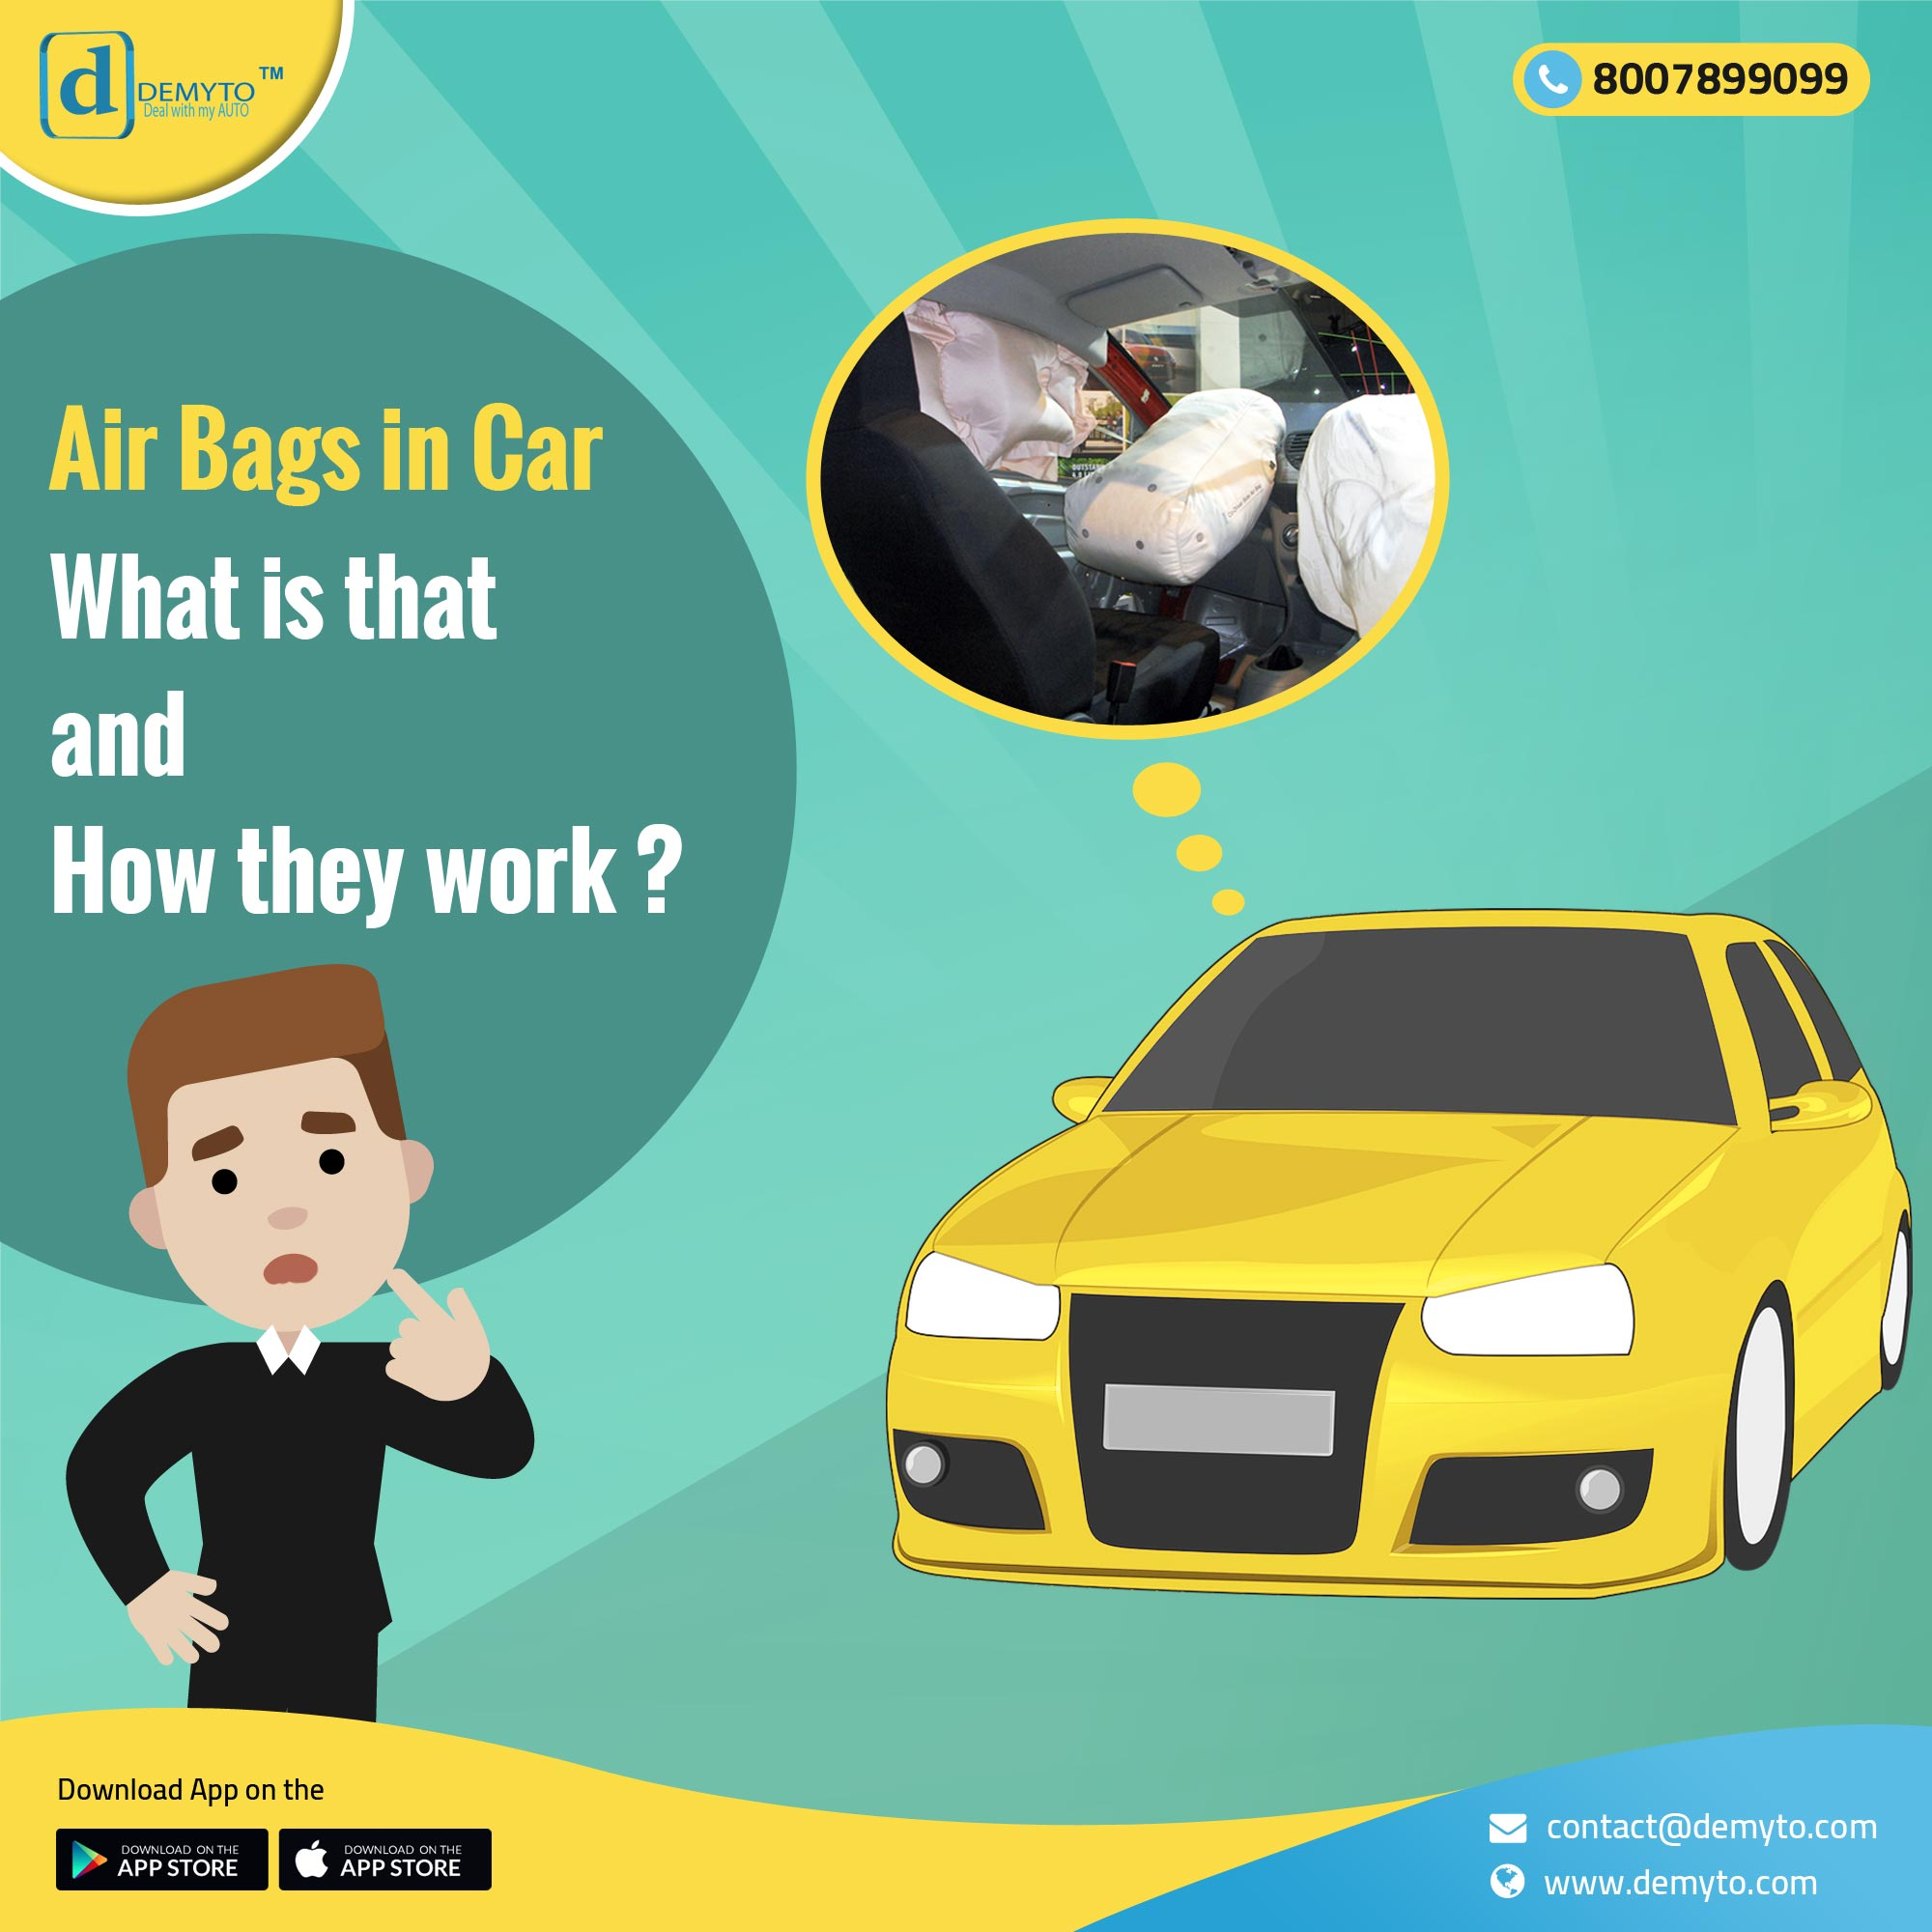 How can airbags be a life saver?